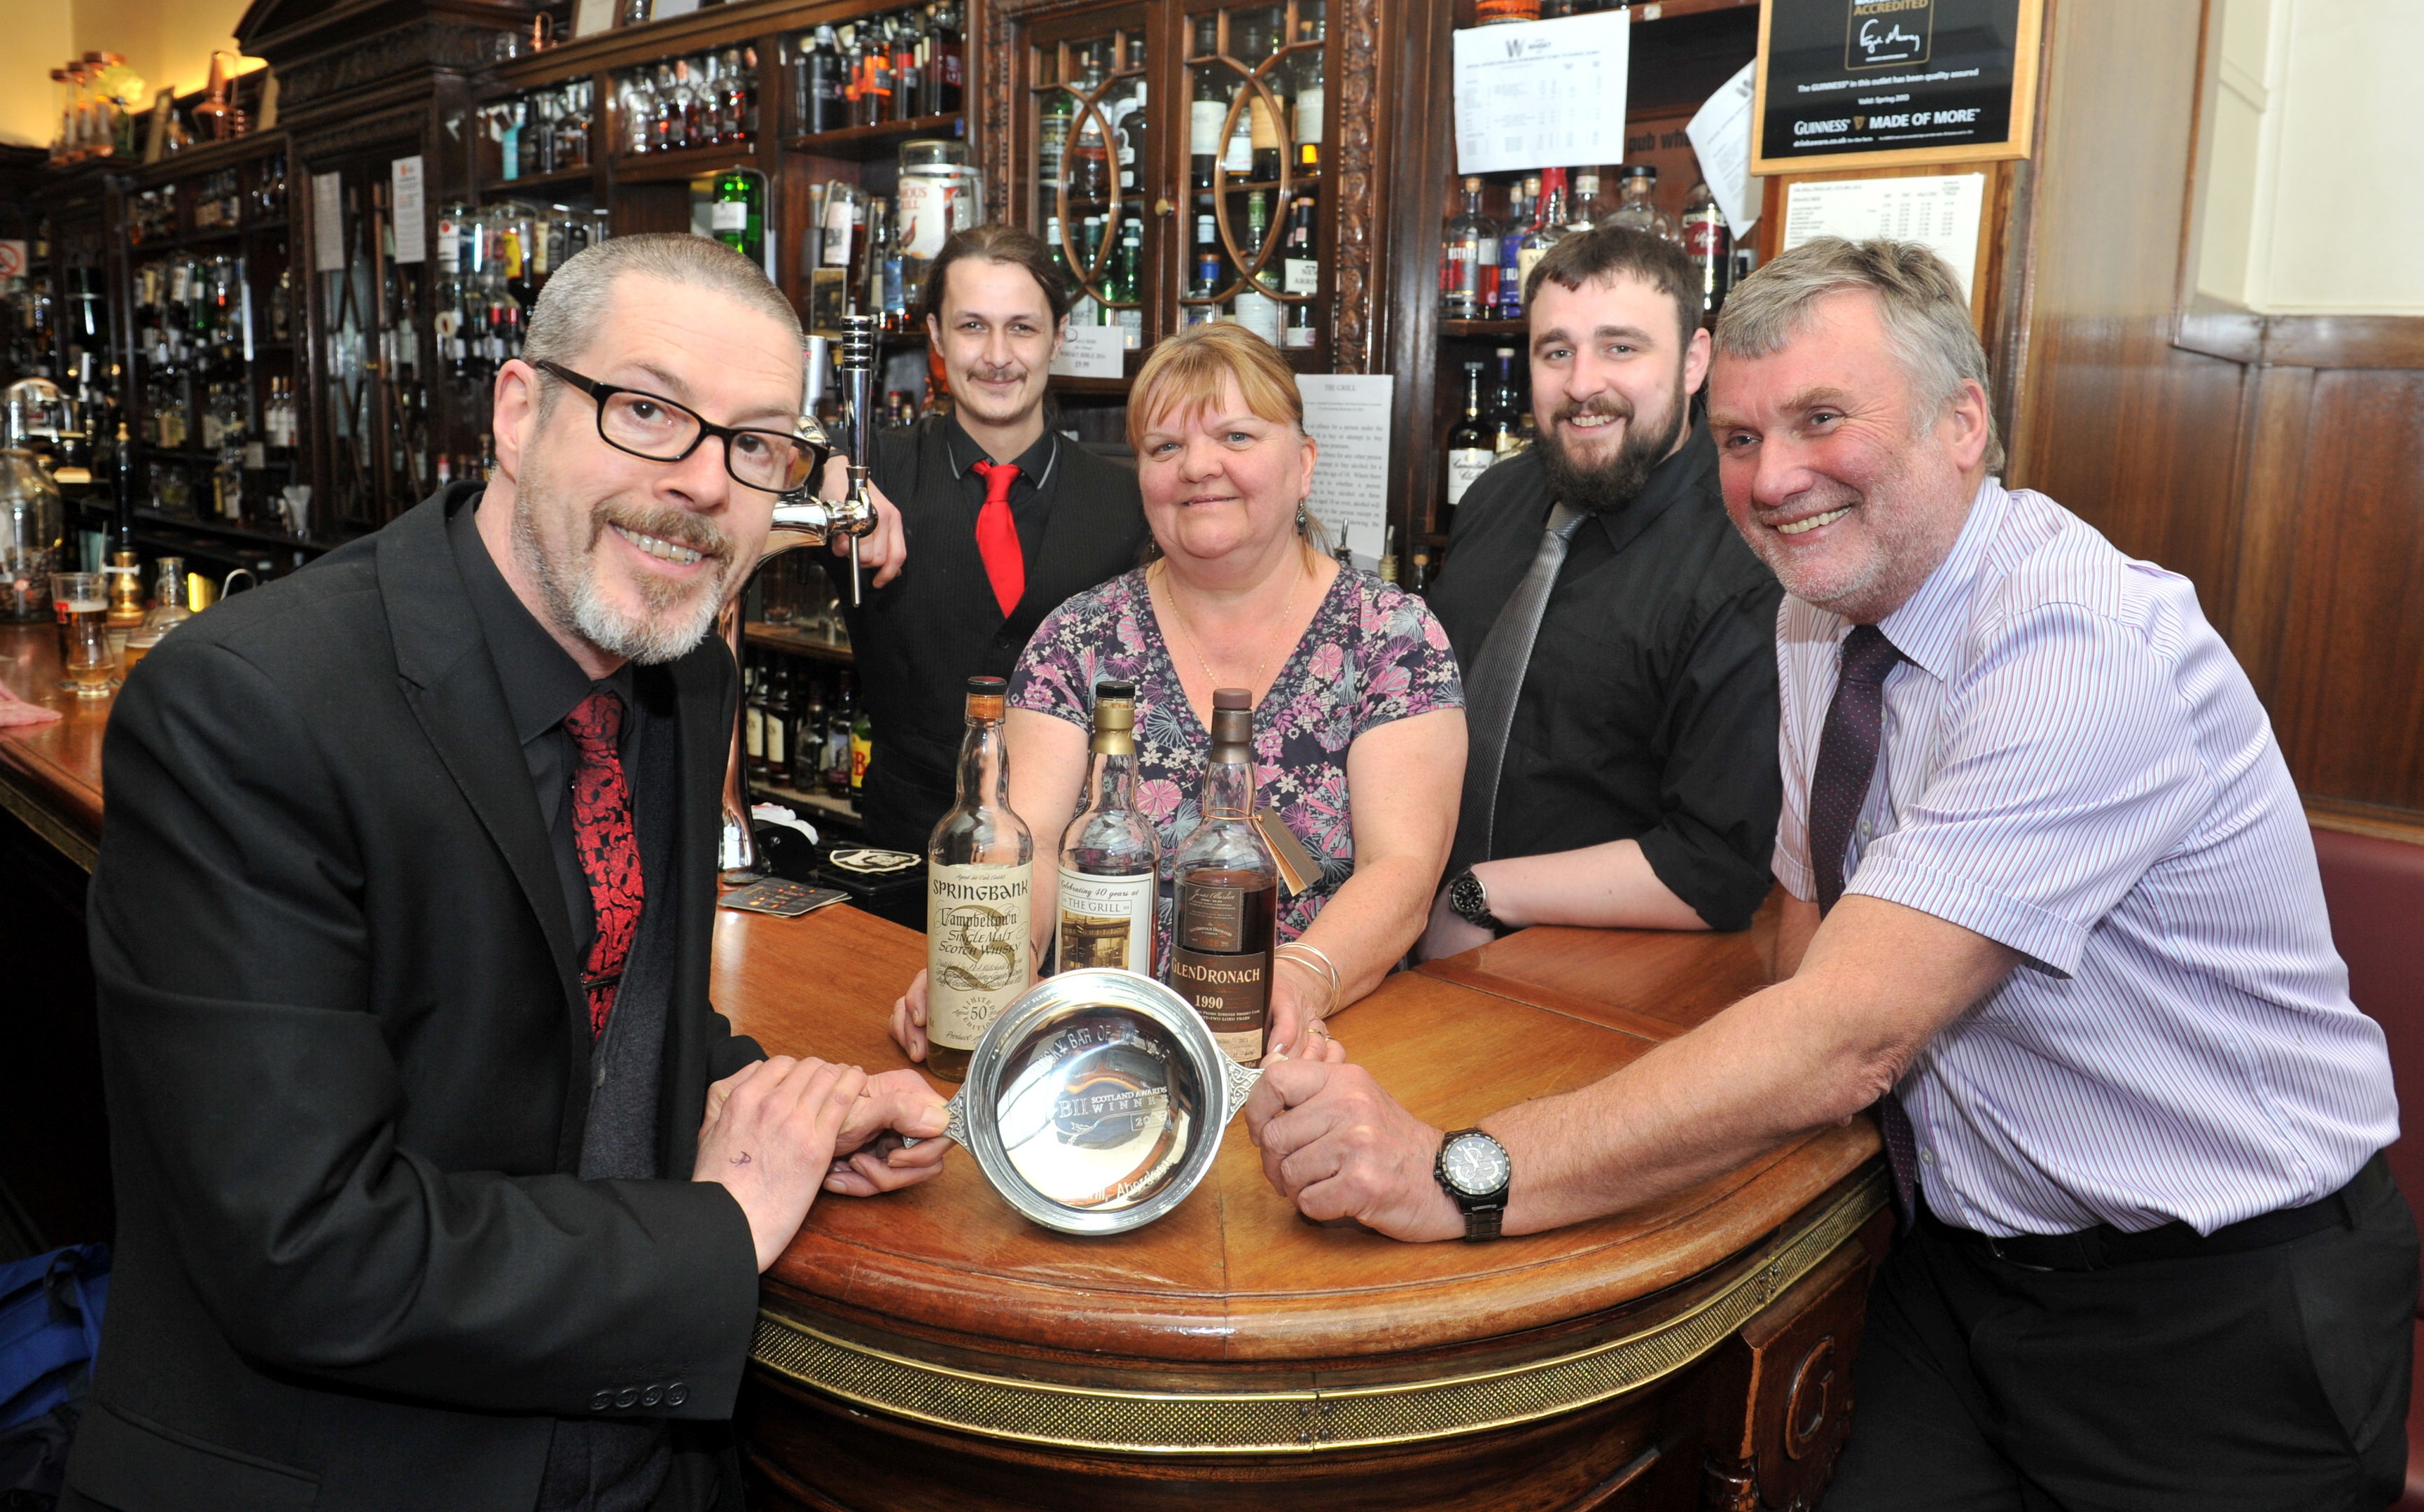 From left, Keith McKenzie, supervisor, Pete Robertson, supervisor, Rosaline Perkins, bar staff, Craig Murray, barman and Andy Juroszsek, owner, after The Grill won a national  award.